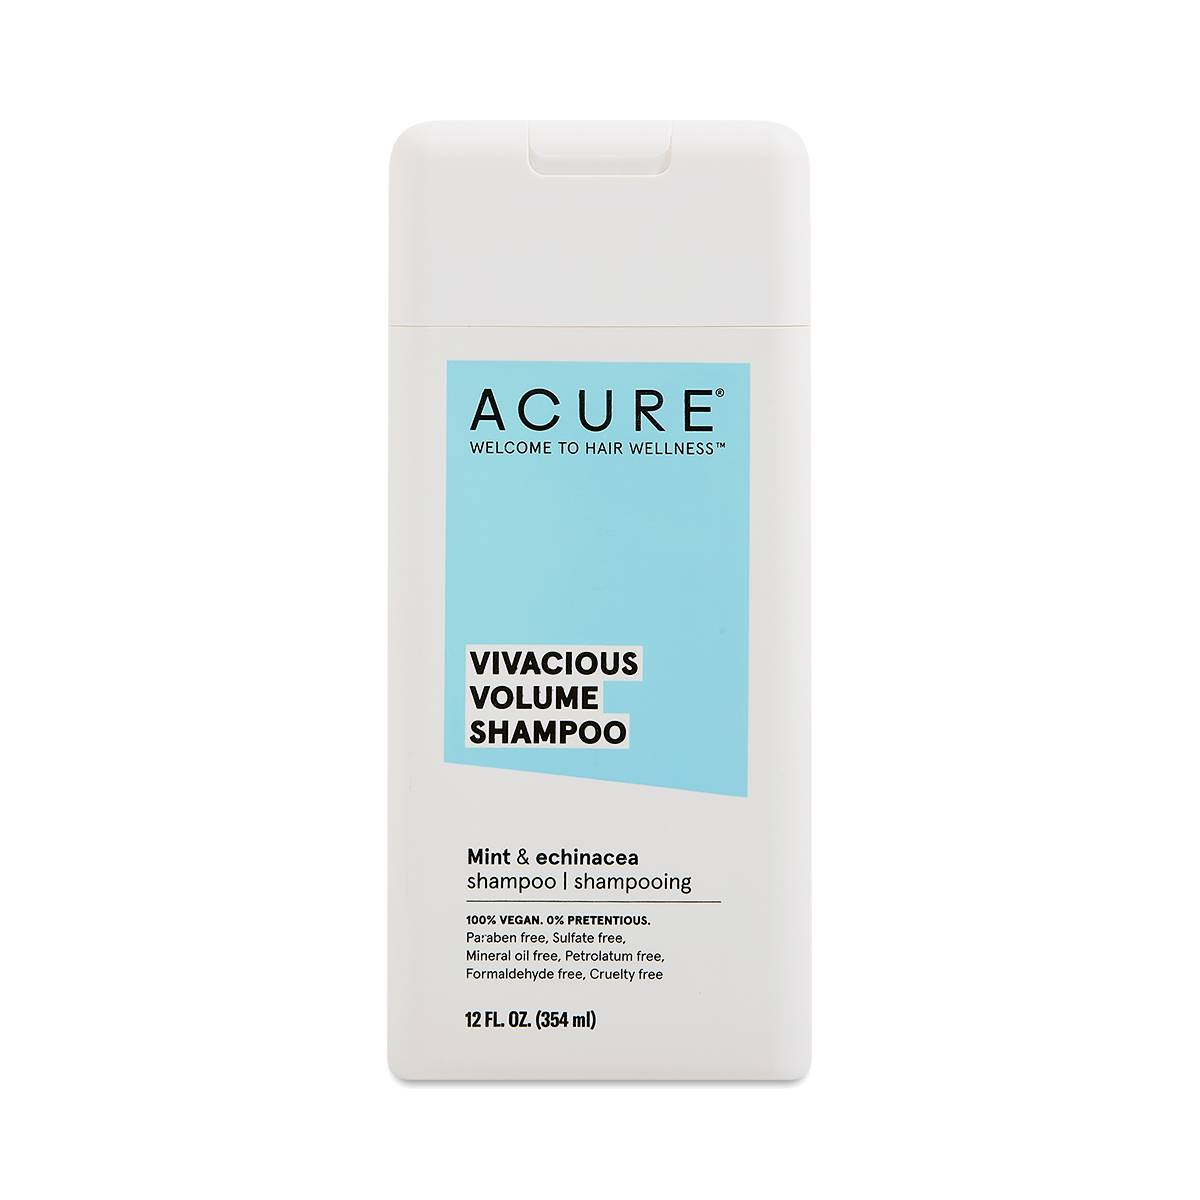 Vivacious Volumizing Shampoo By Acure